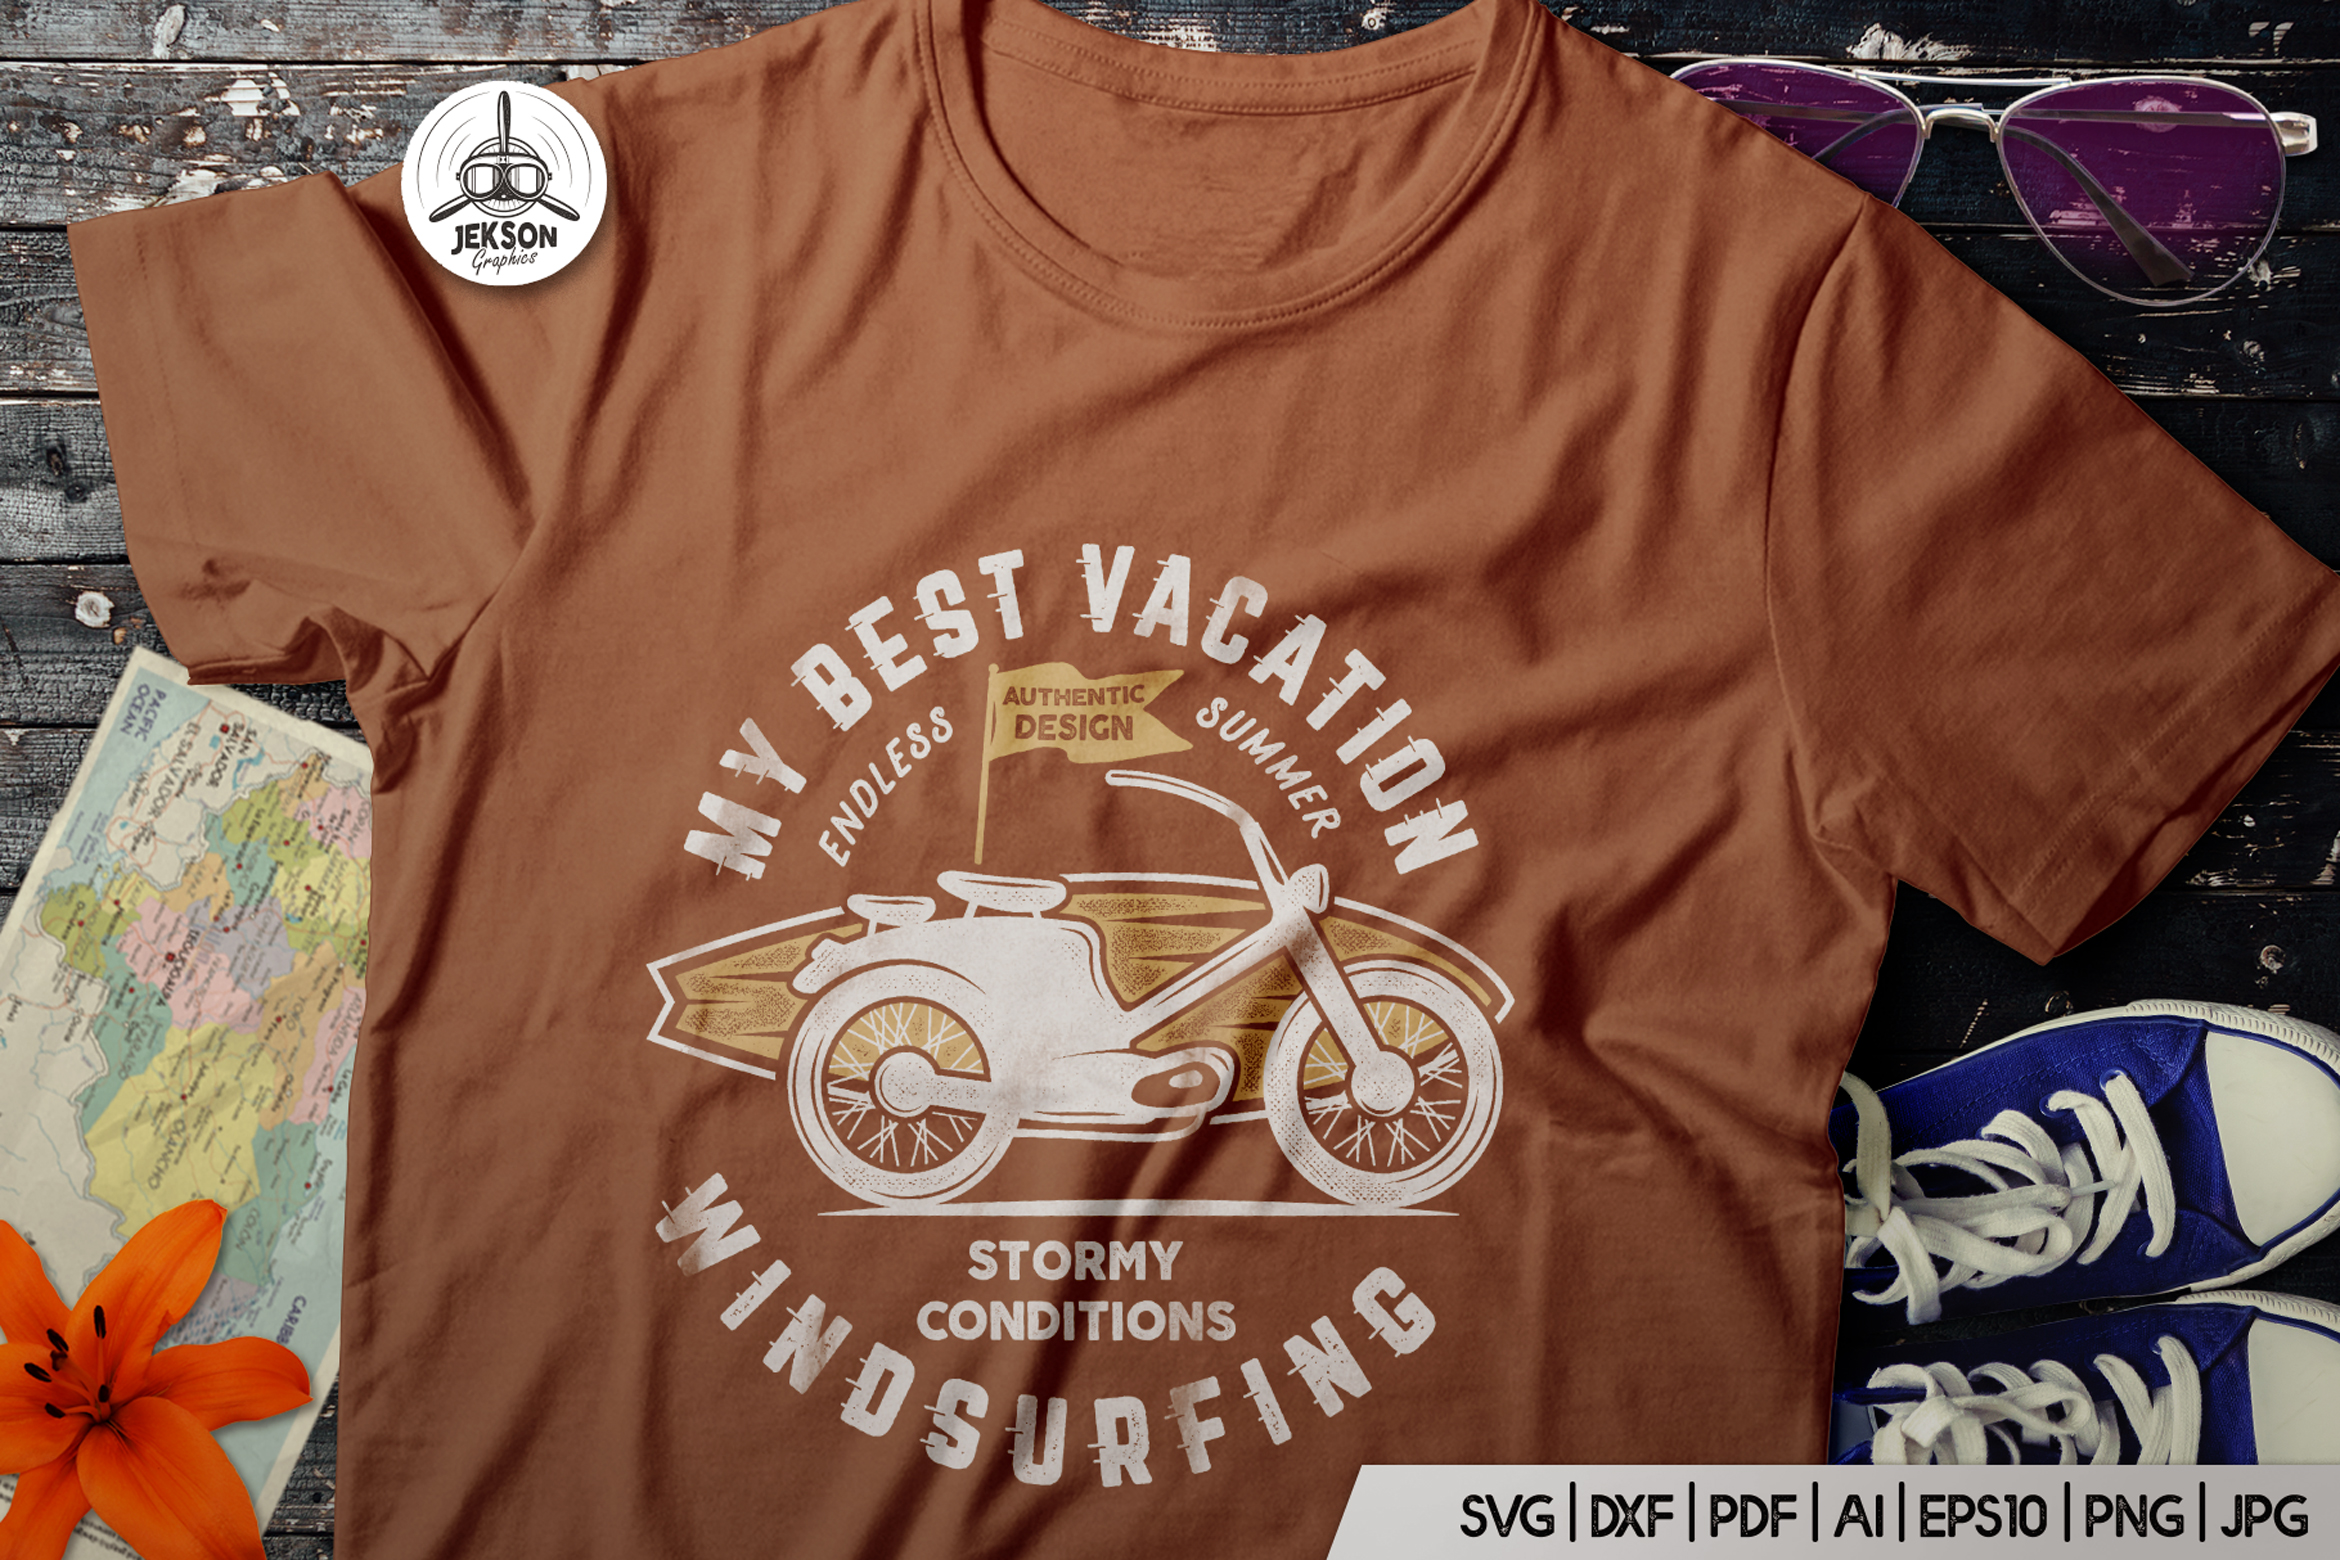 Download Free Surfing Retro Graphics Prints Tshirt Graphic By Jeksongraphics for Cricut Explore, Silhouette and other cutting machines.